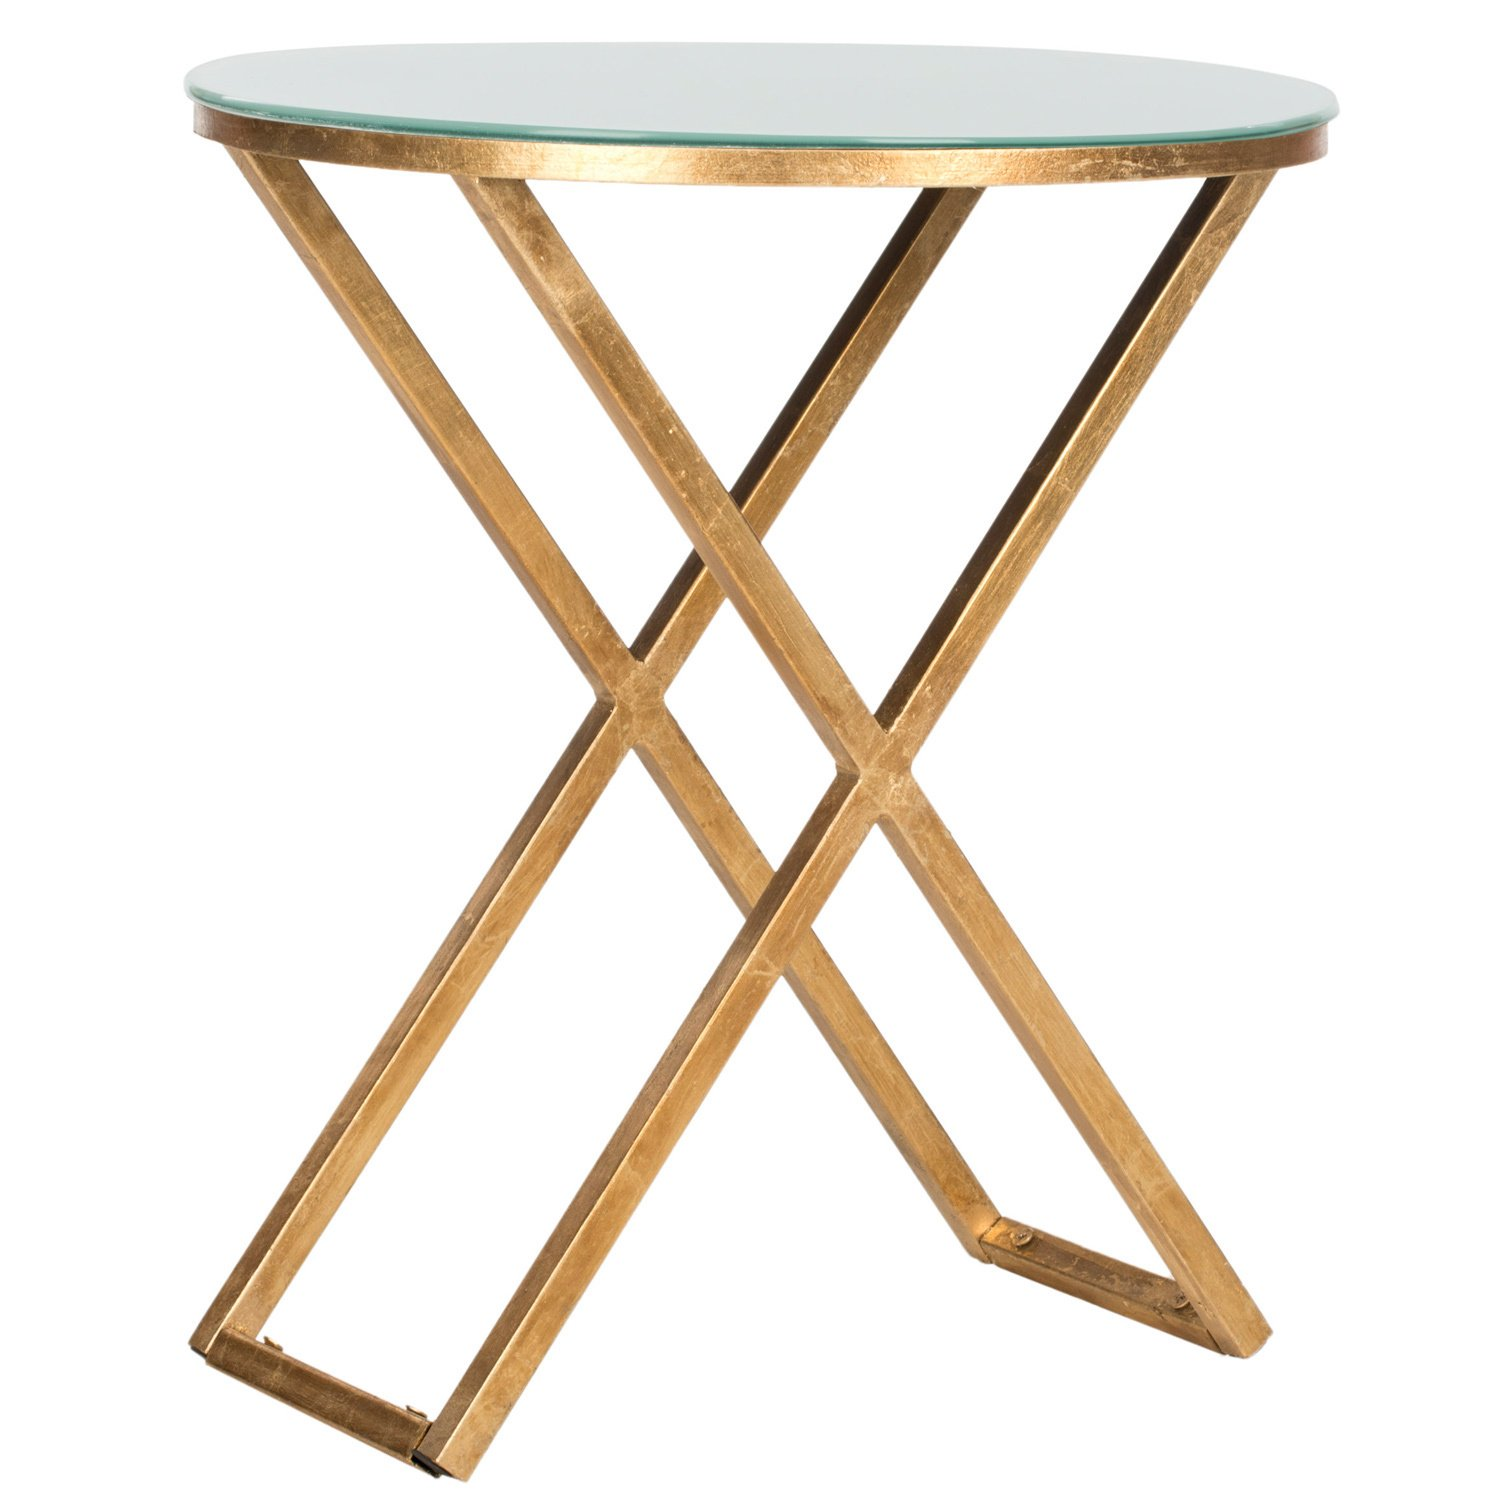 safavieh treasures riona gold white top accent table pedestal black metal end all marble gray coffee and tables desk with drawers quilted placemats dining toronto oak drop leaf